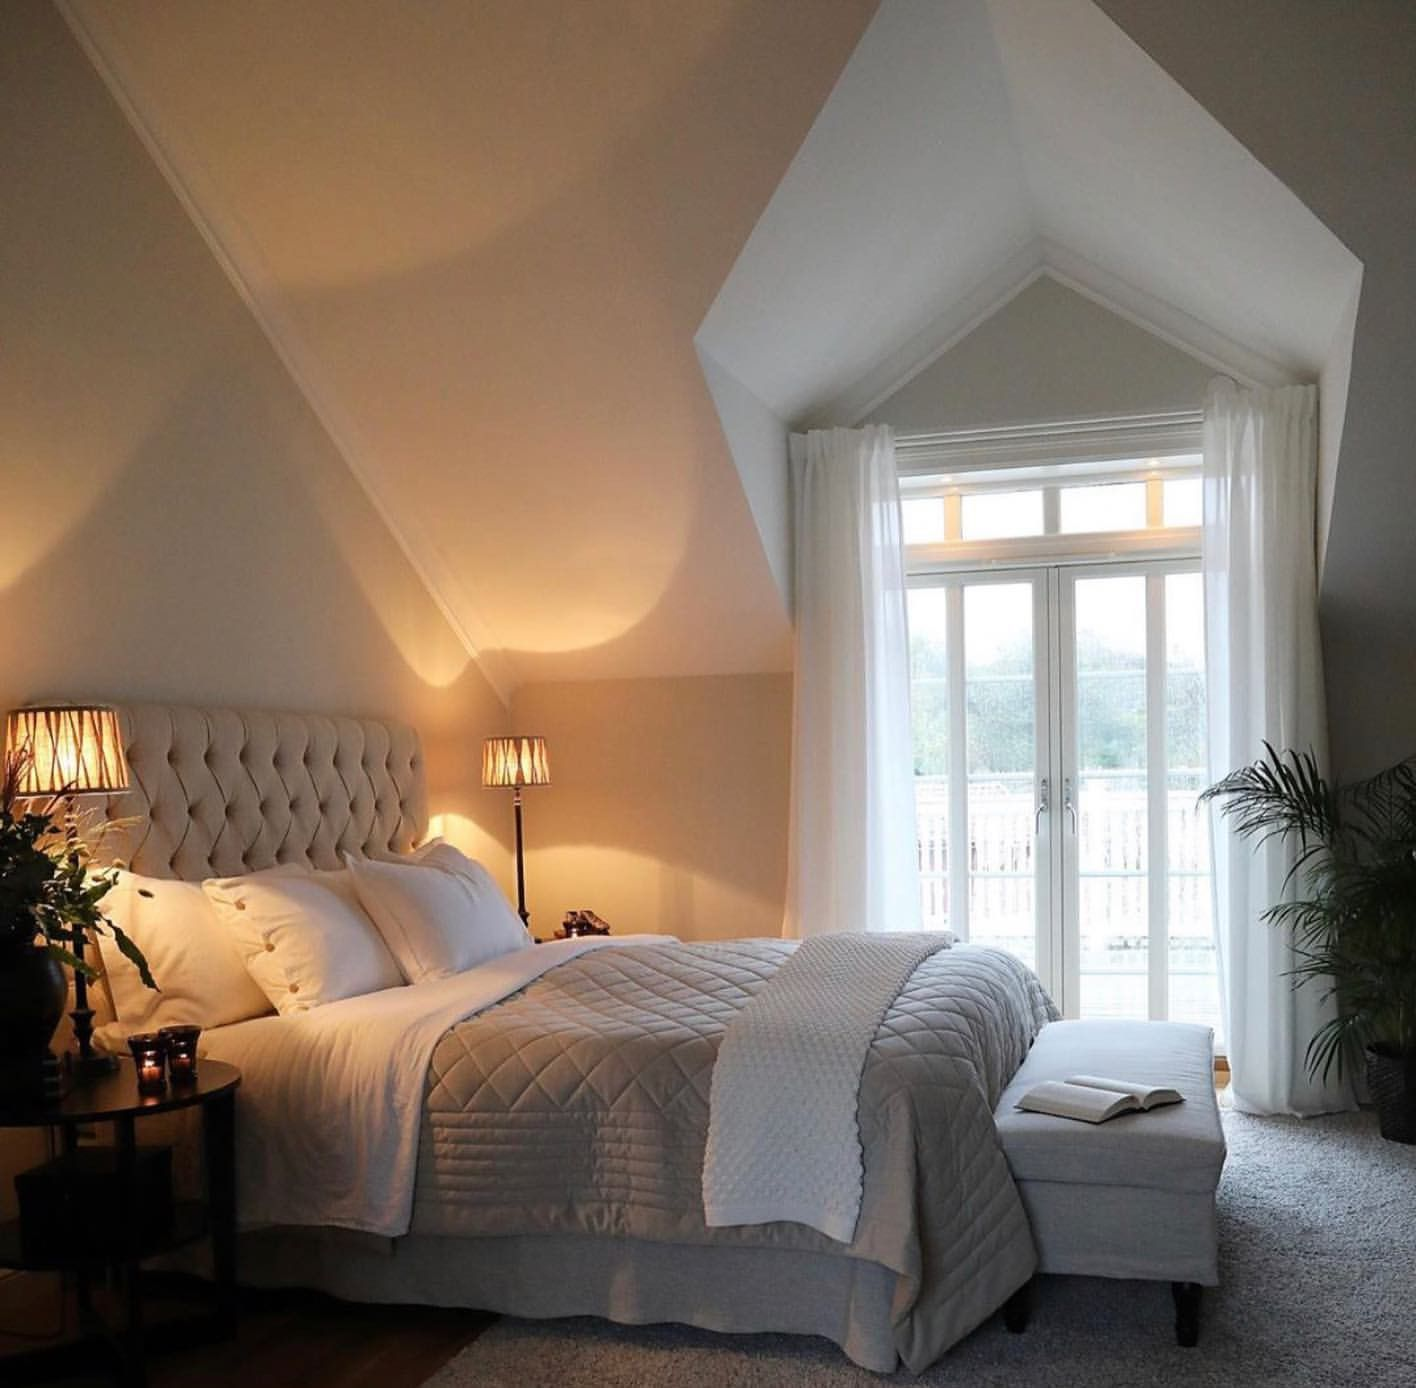 Pin By Tatiana Ly On House Design Diy Home Decor For Apartments Renting Bedroom Decor Classic Bedroom